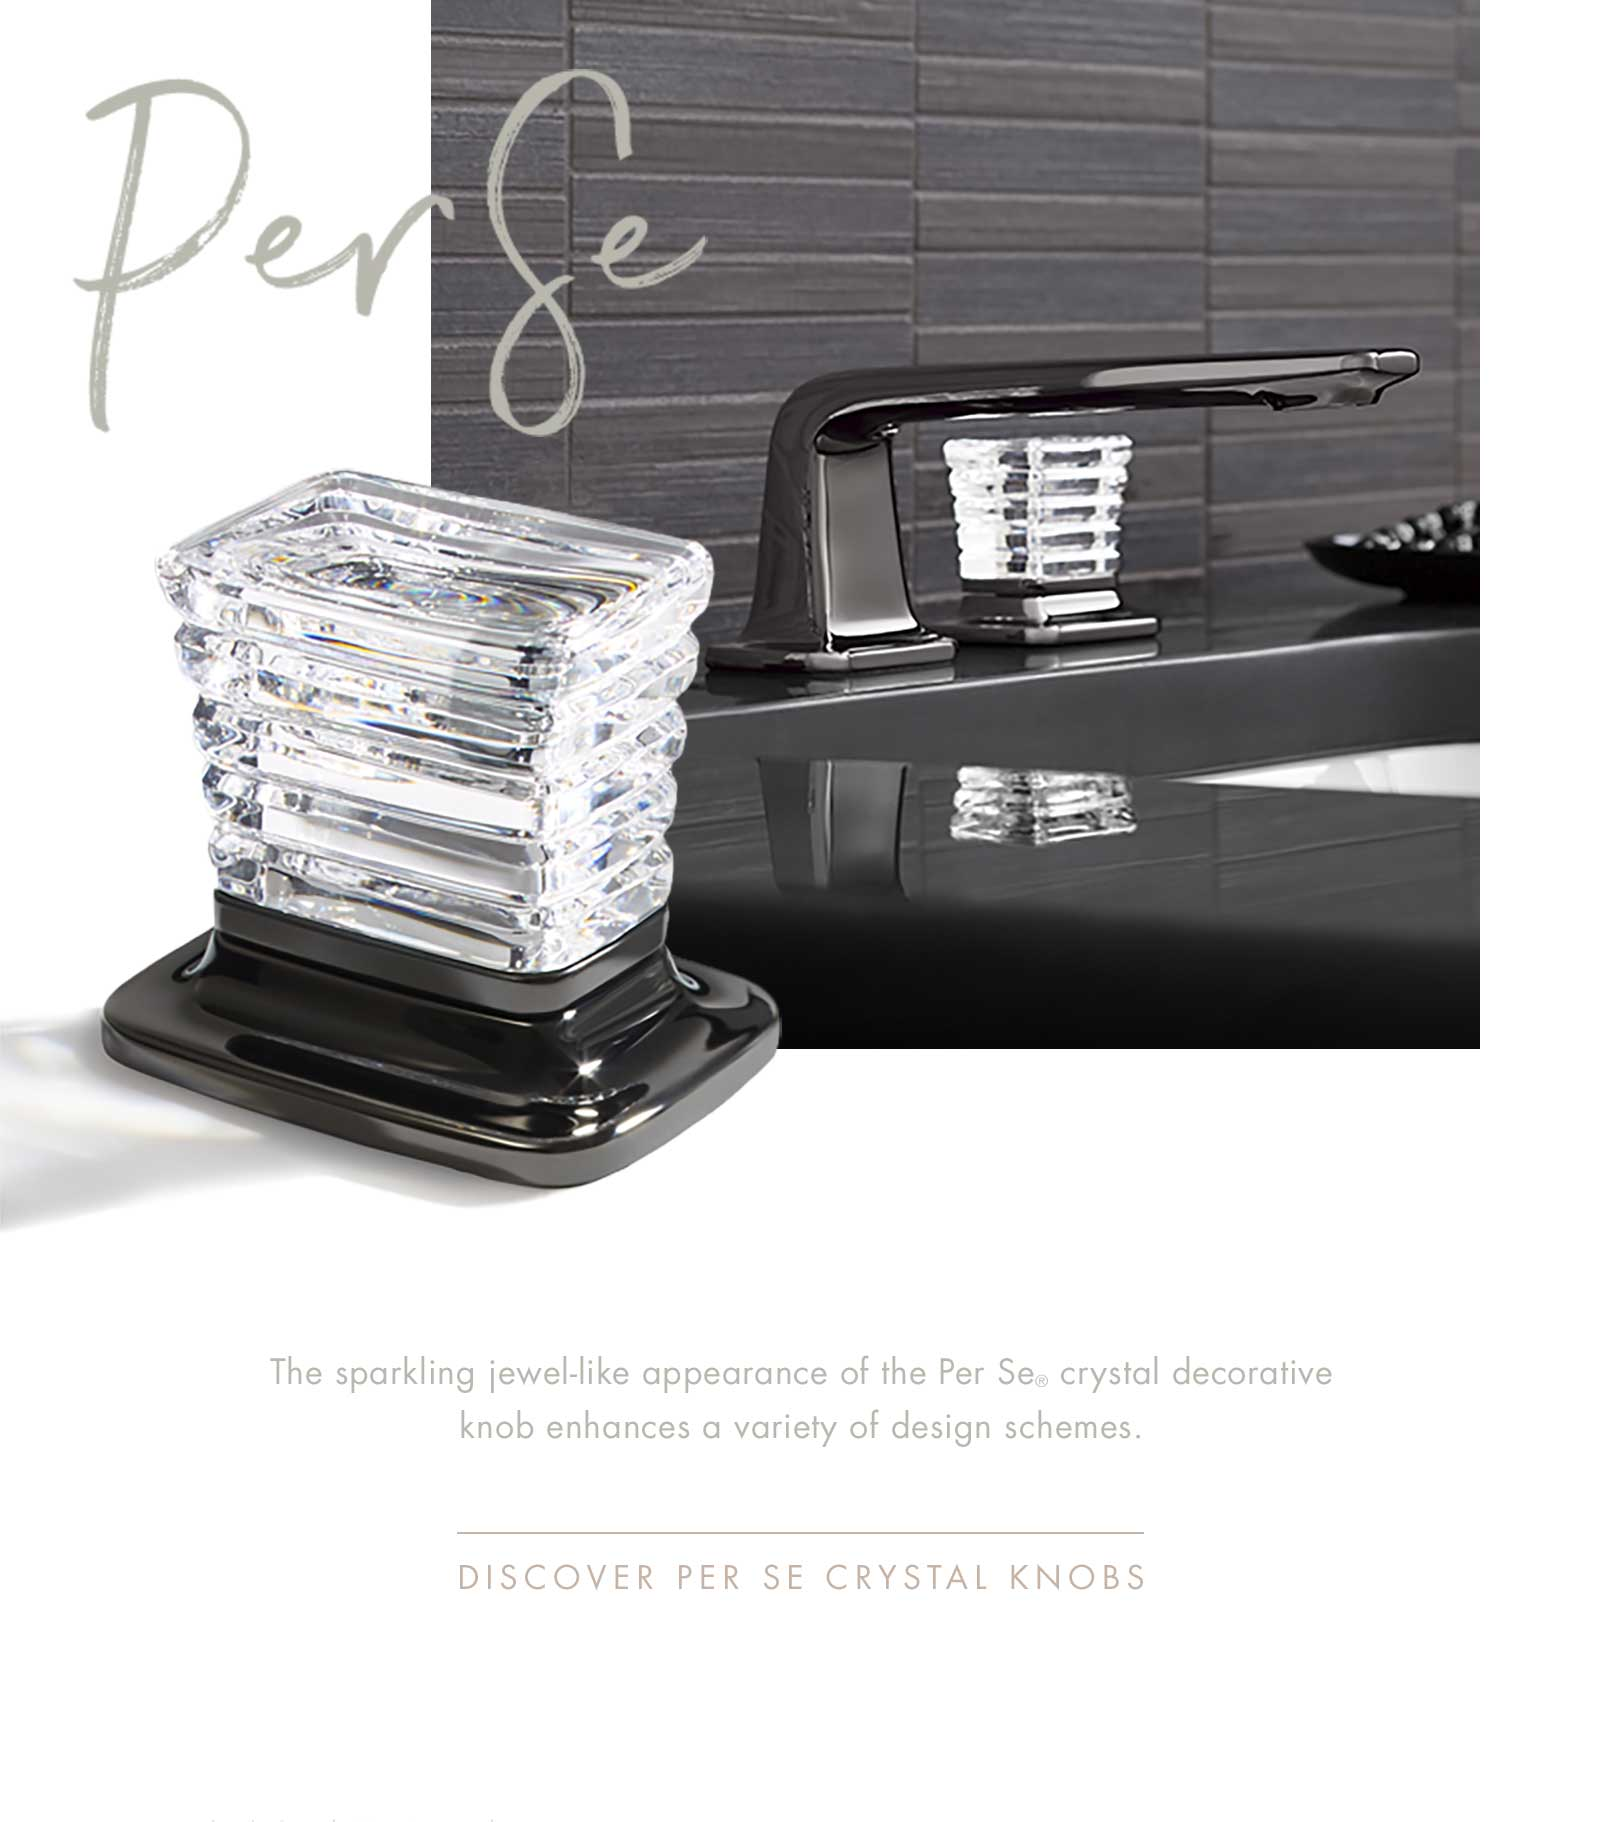 Per Se | The sparkling jewel-like appearance of the Per Se® crystal decorative knob enhances a variety of design schemes. | DISCOVER PER SE CRYSTAL KNOBS